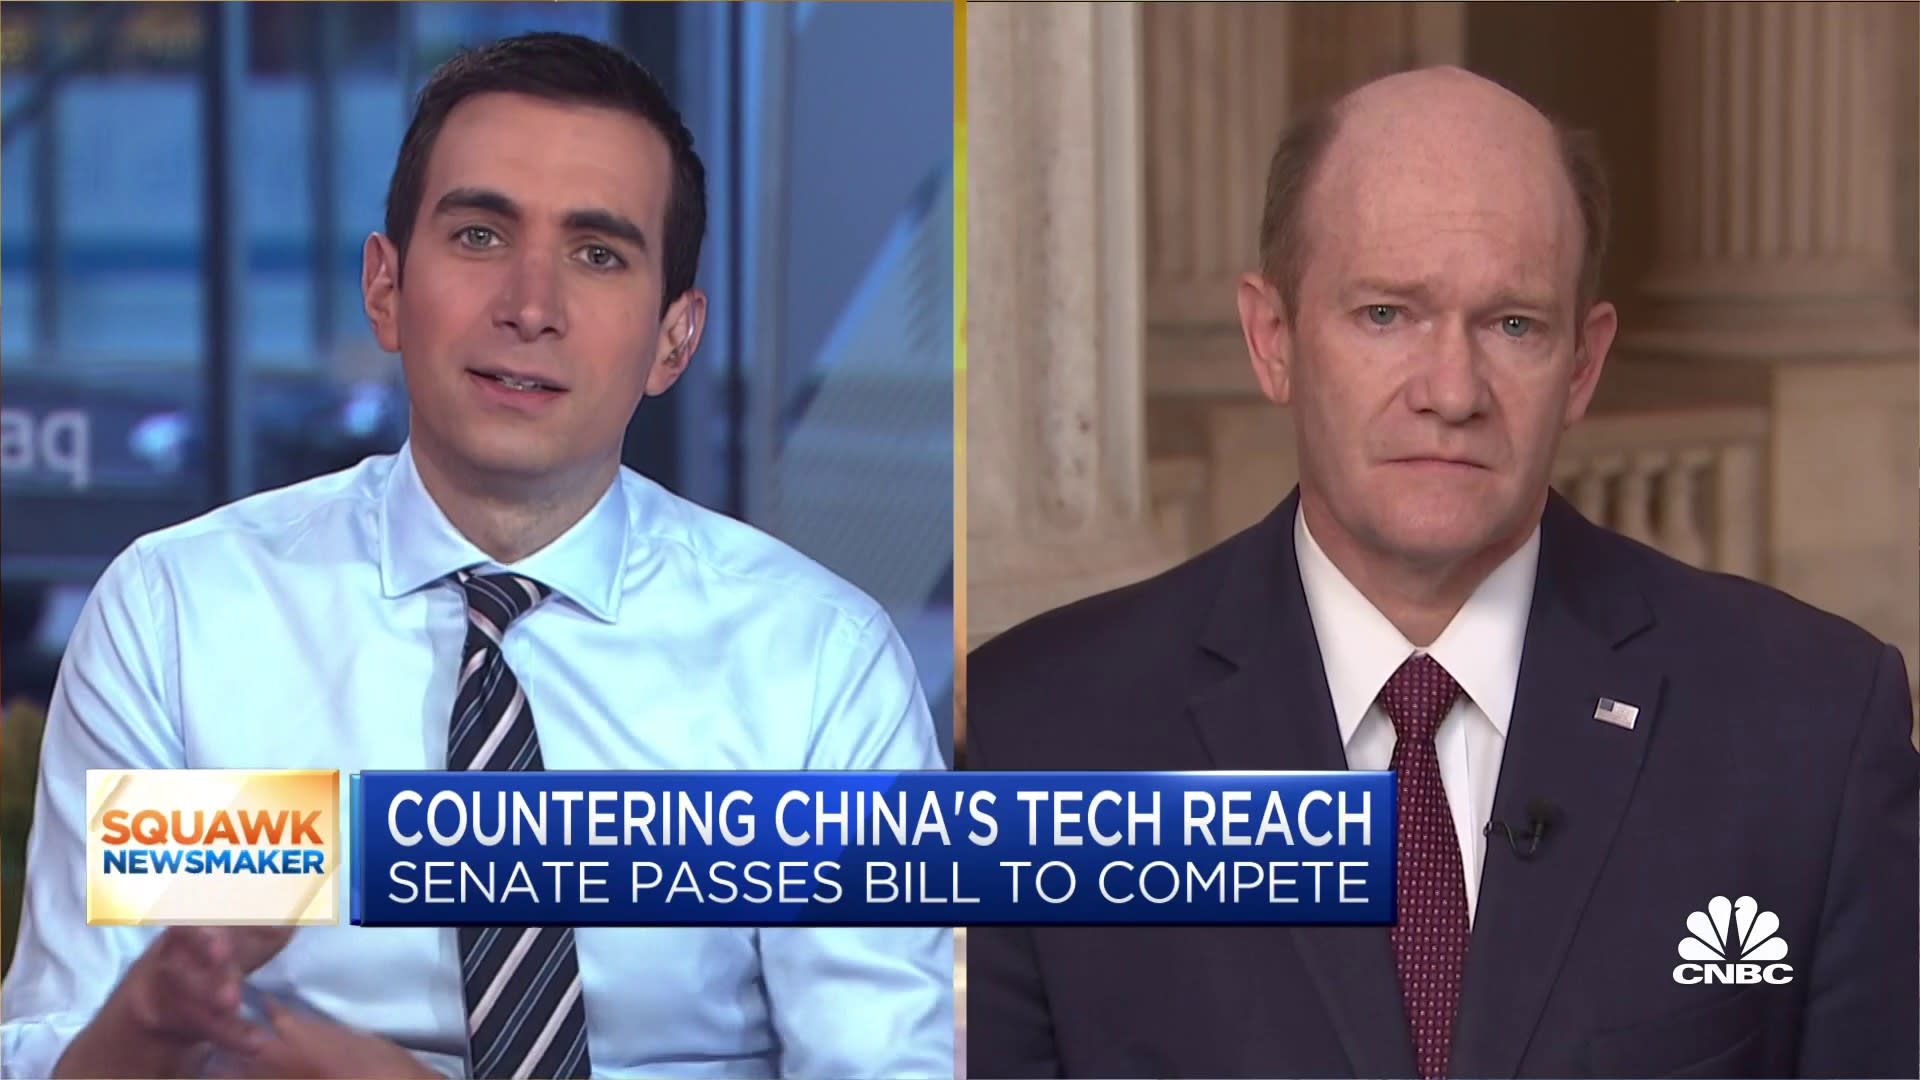 Apple and other U.S. companies remain under pressure to answer for China's 'repression,' says Sen. Chris Coons